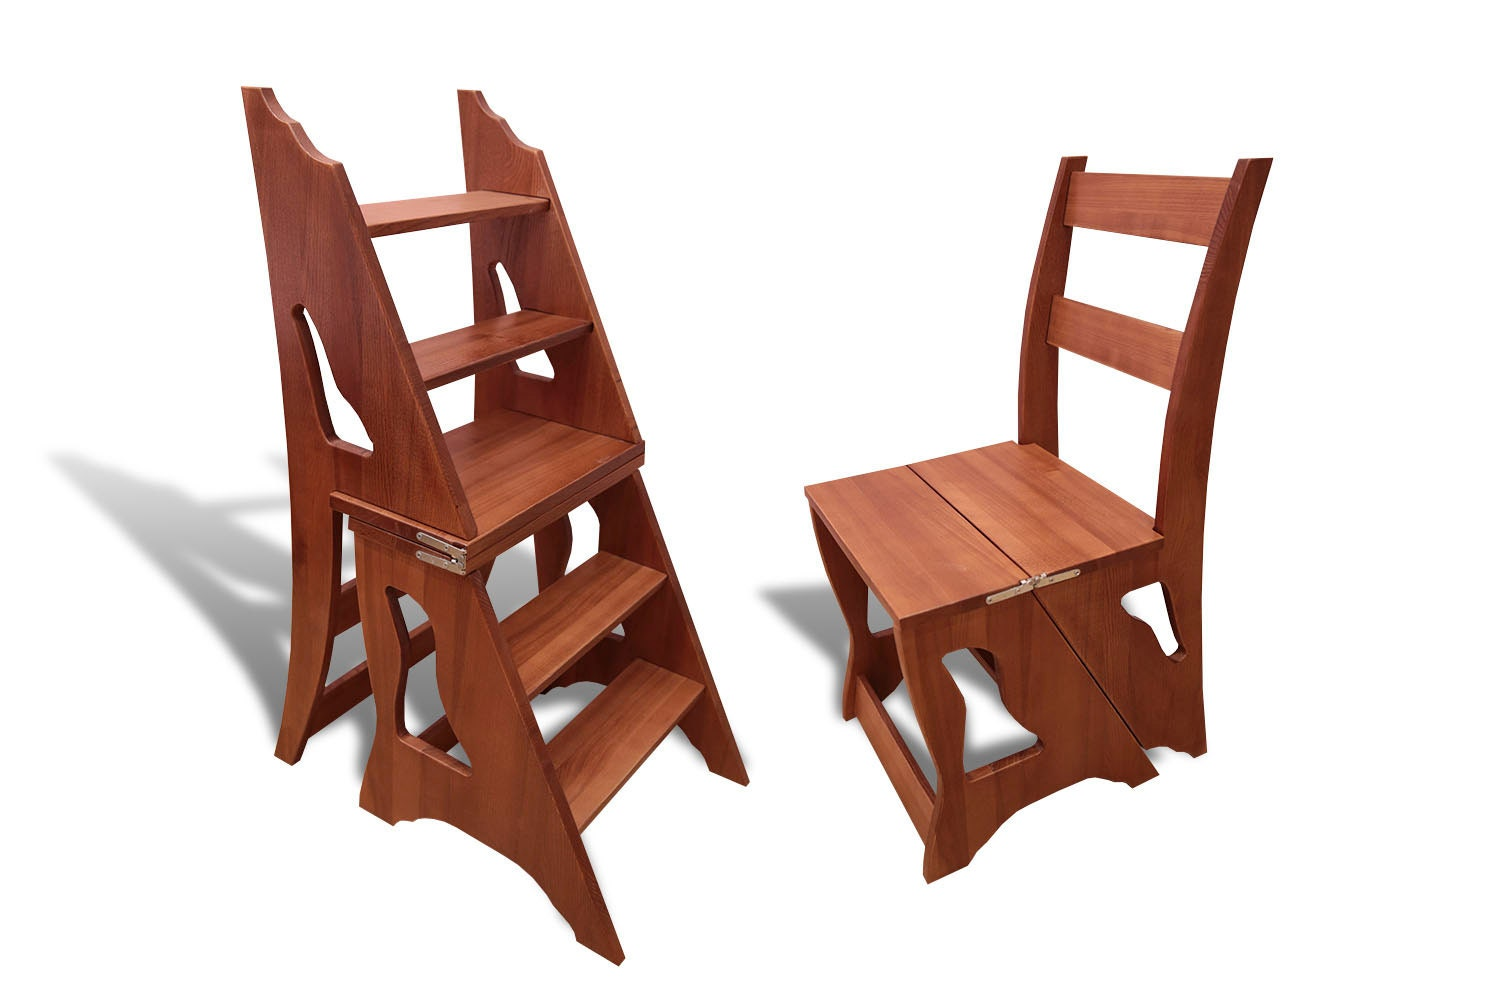 wooden step of kitchen best choose stool stools image